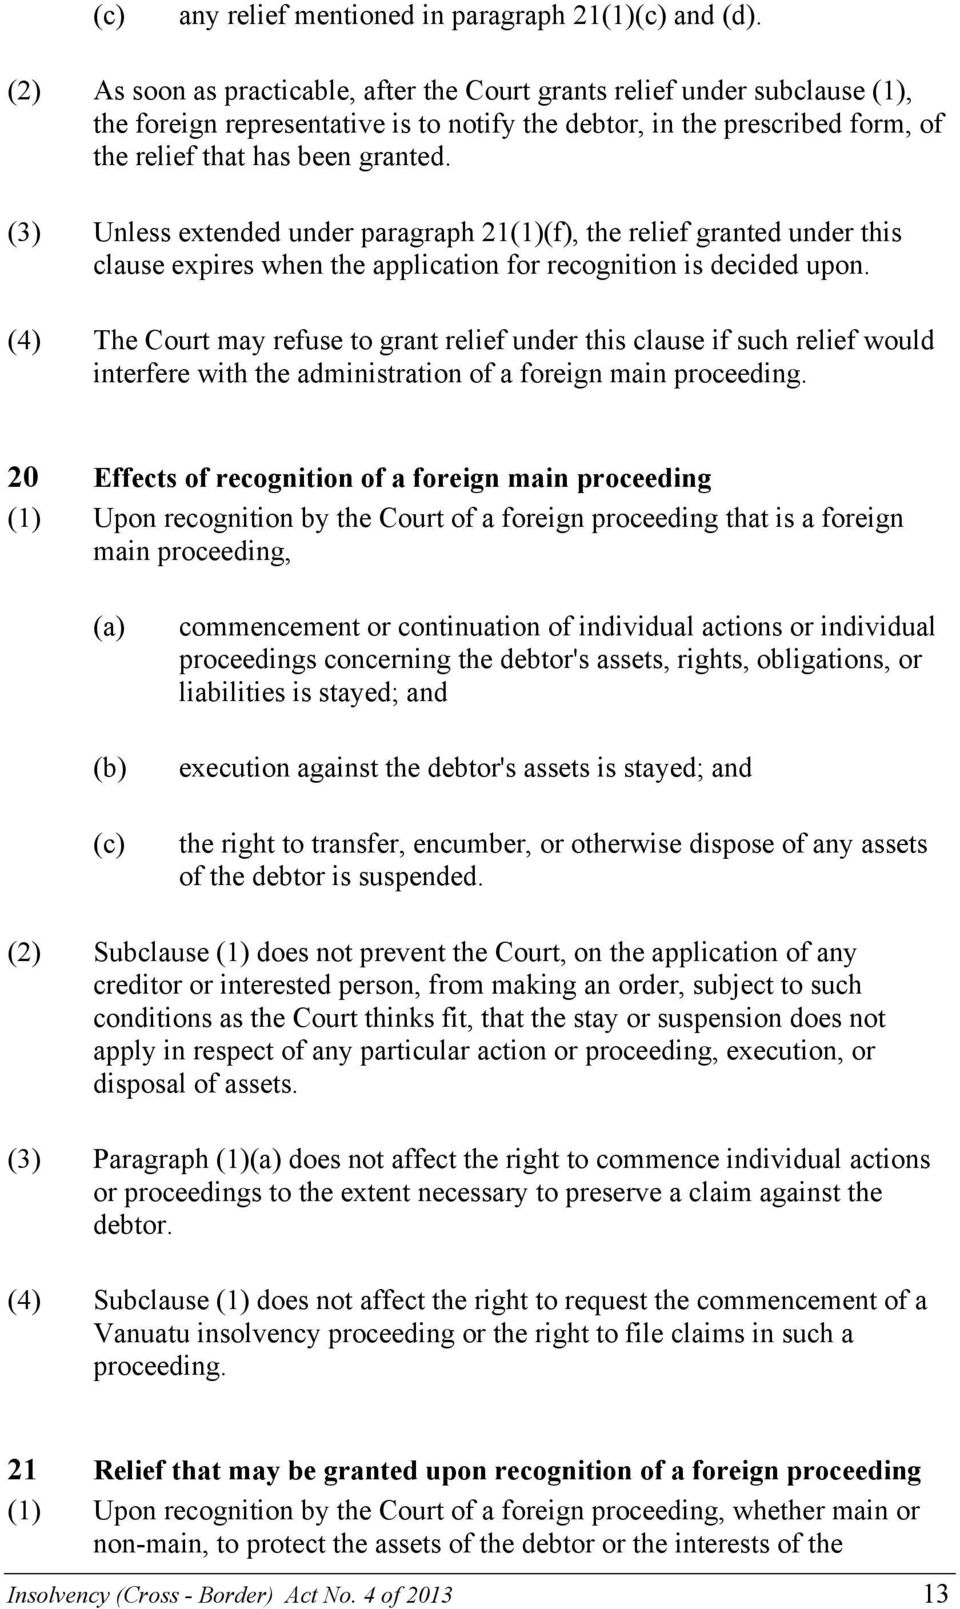 (3) Unless extended under paragraph 21(1)(f), the relief granted under this clause expires when the application for recognition is decided upon.